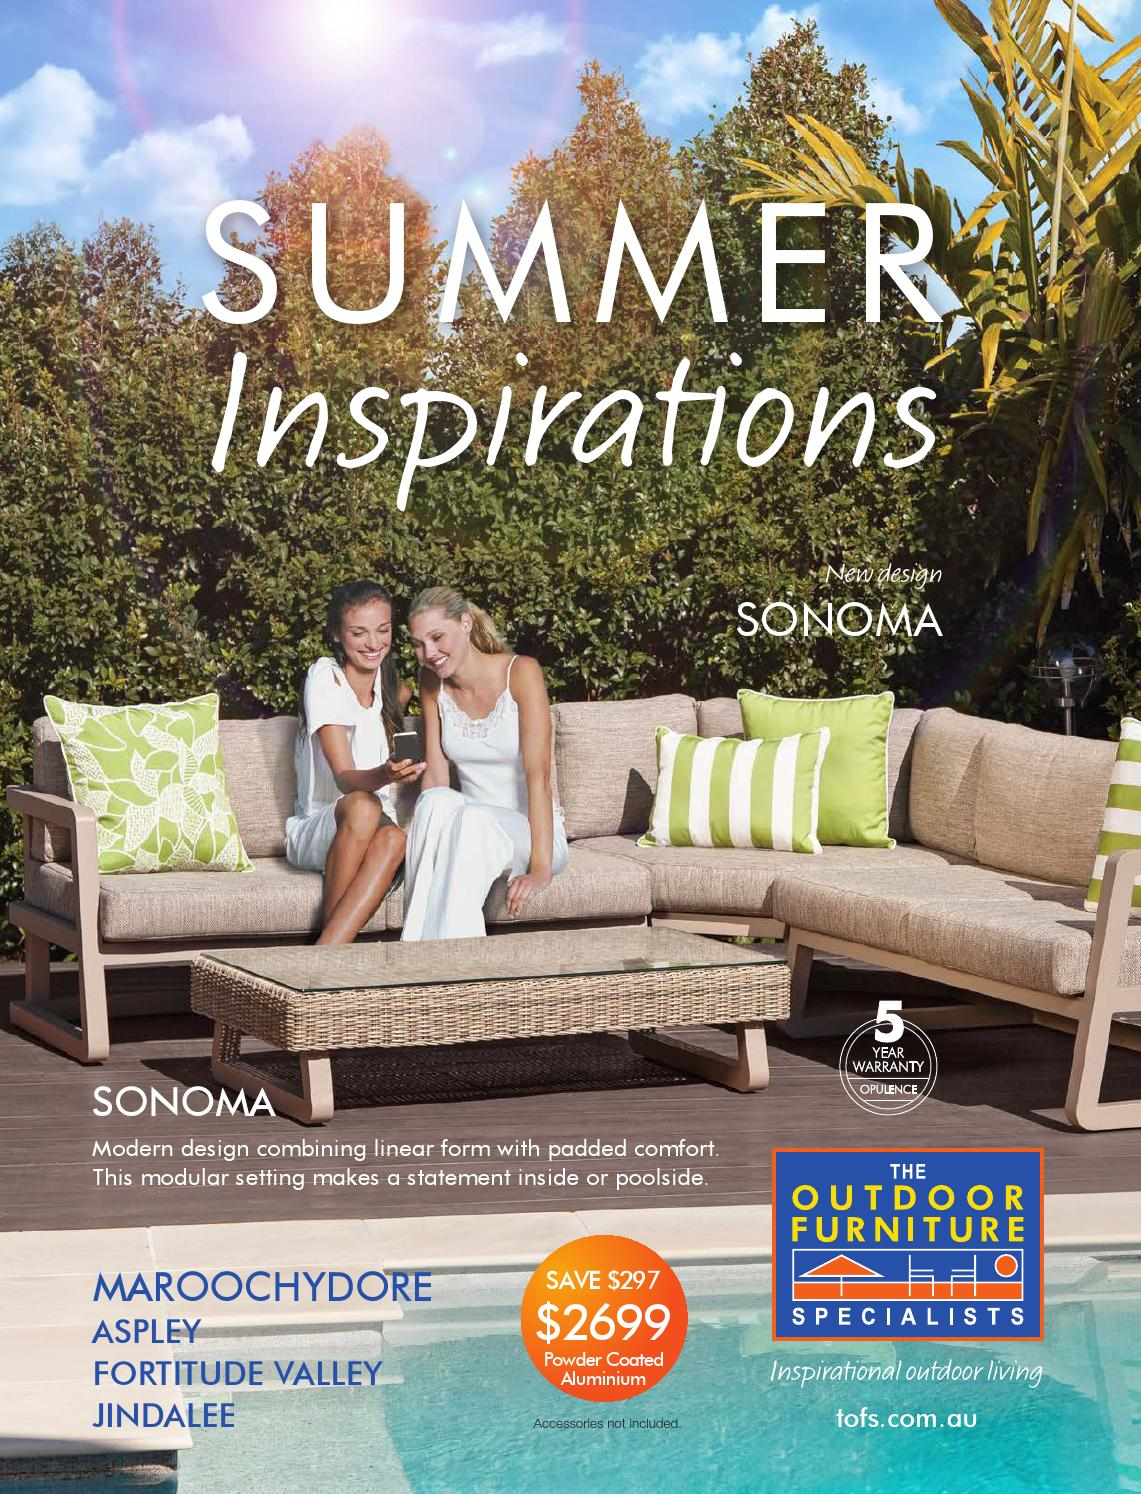 The outdoor furniture specialists maroochydore summer inspirations catalogu